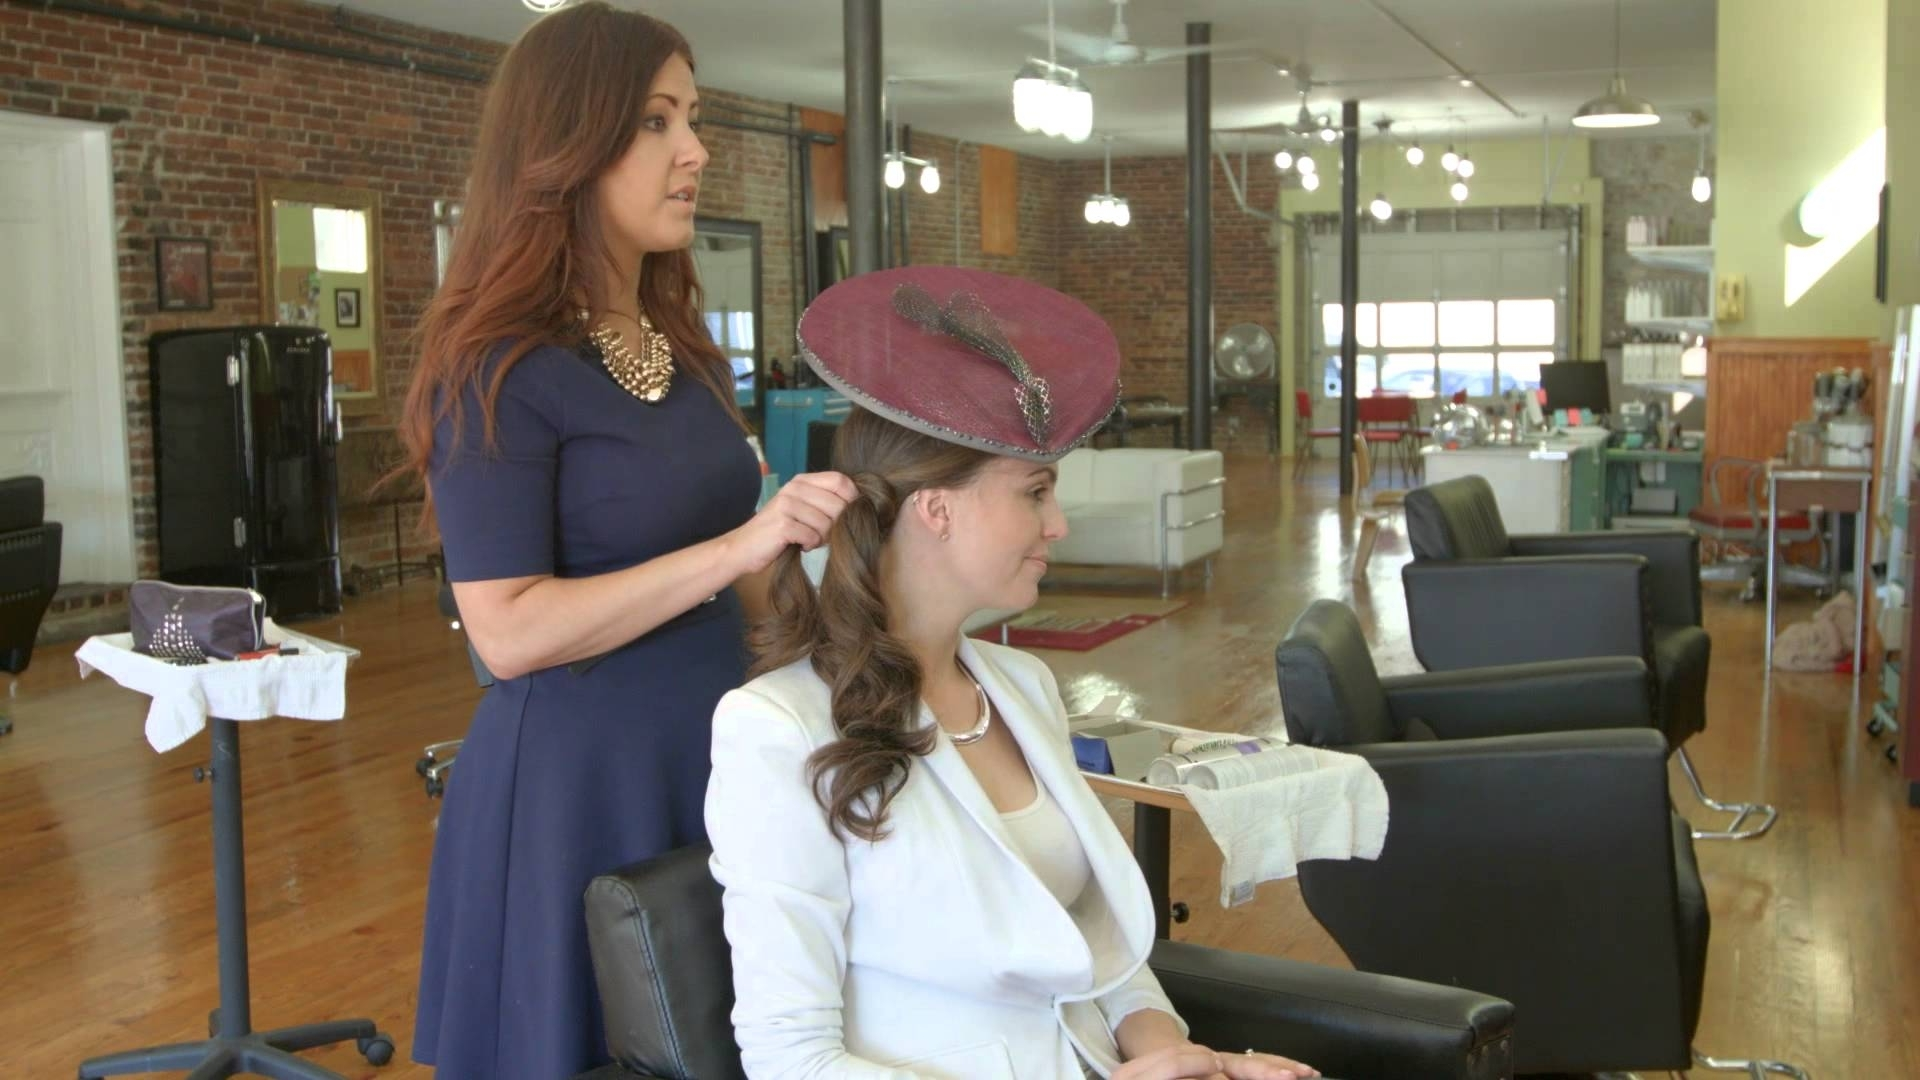 Well Known Wedding Guest Hairstyles For Long Hair With Fascinator In Hairstyles With Fascinators 2 – Youtube (View 10 of 15)